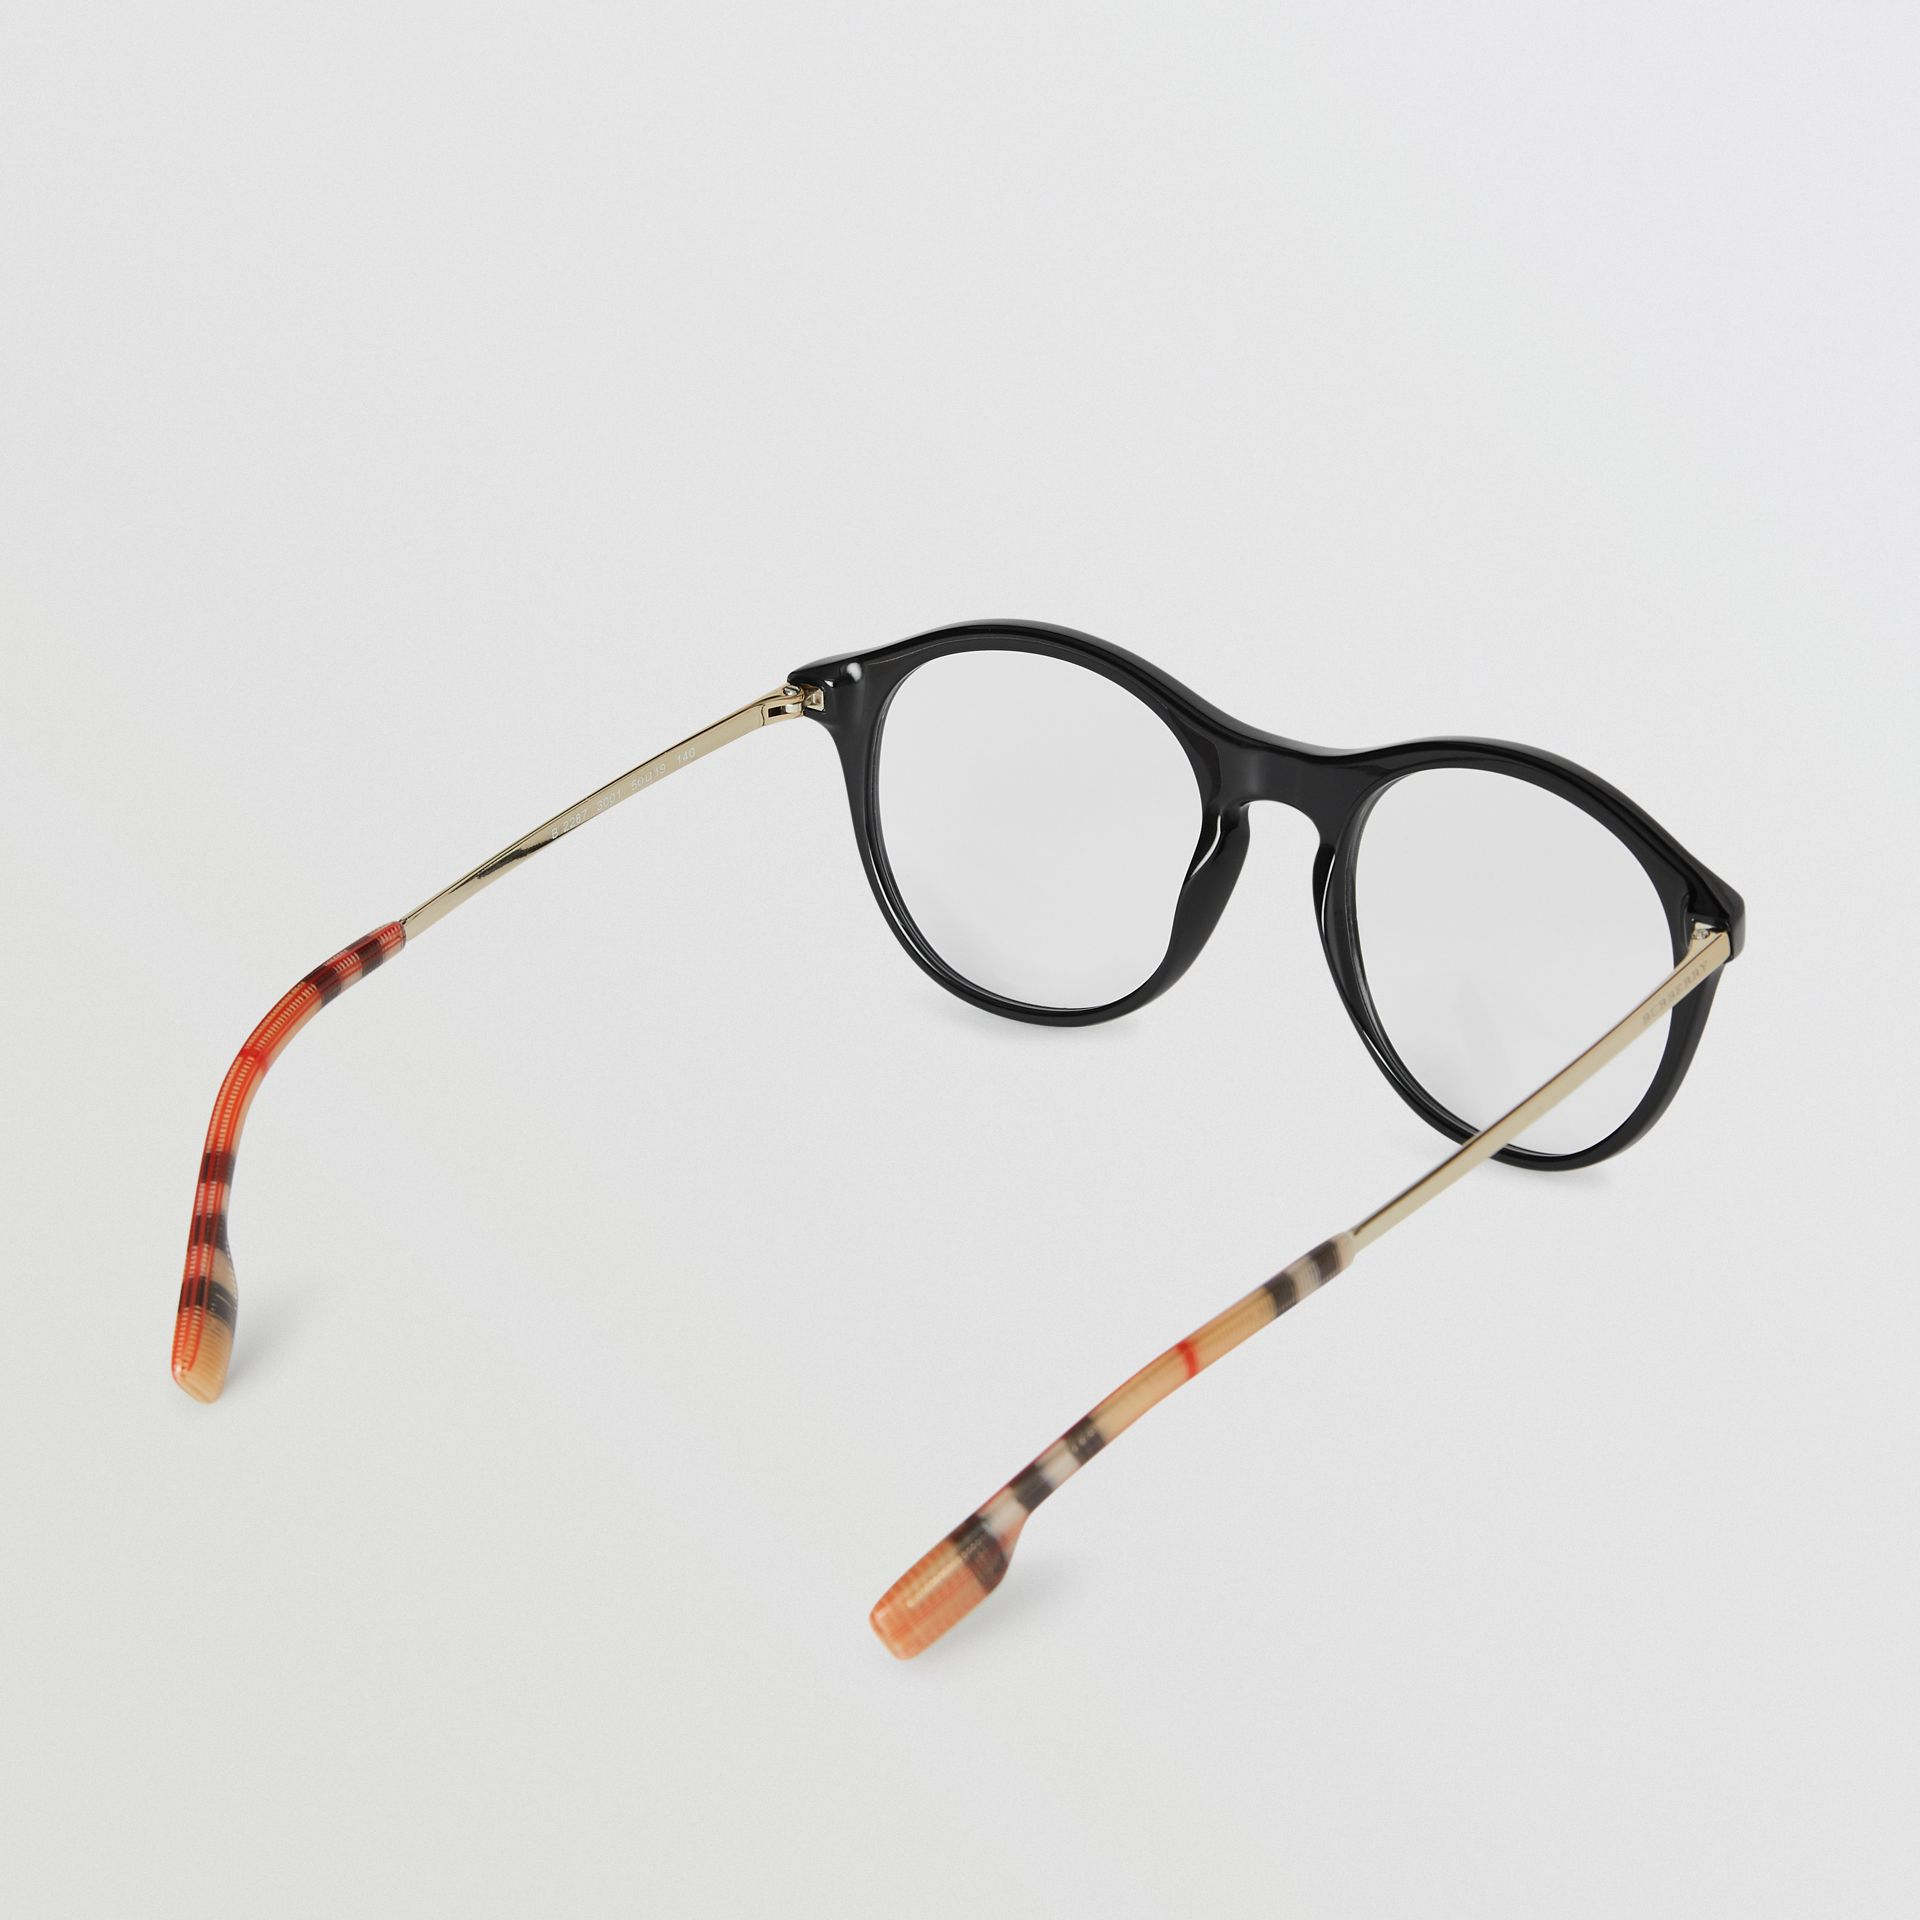 Vintage Check Detail Round Optical Frames in Black - Women | Burberry - gallery image 3